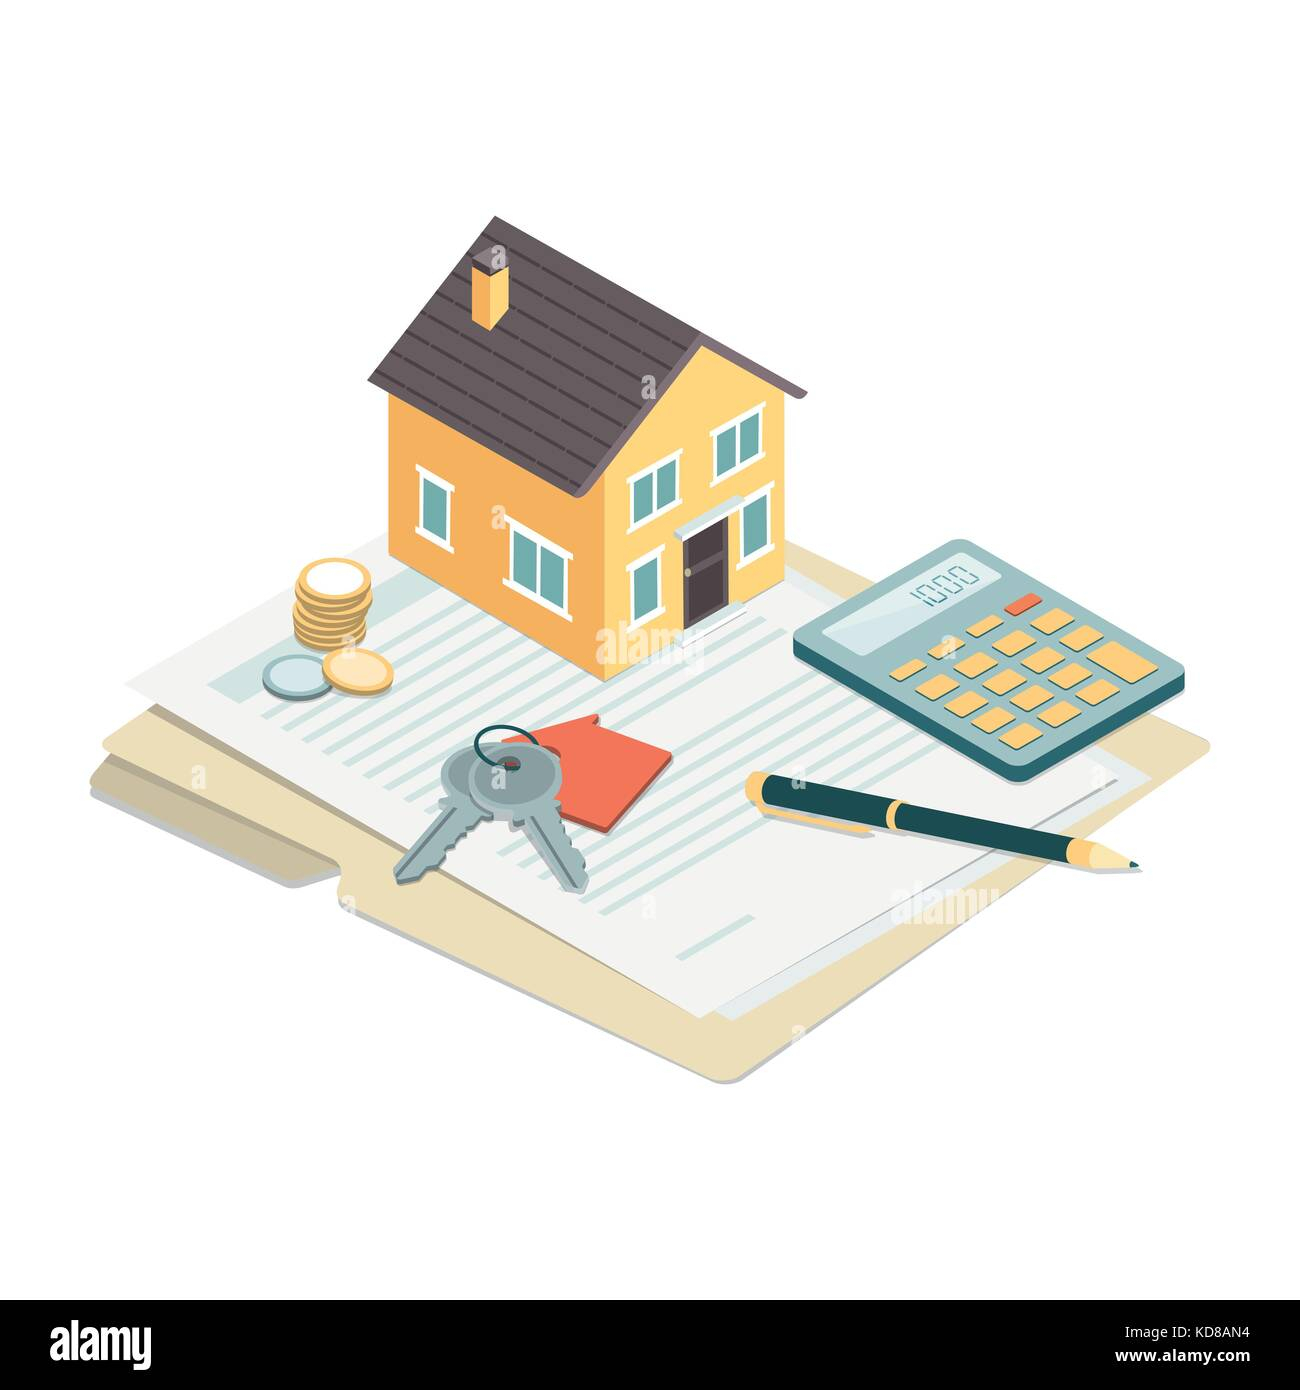 Model house, house keys and contract: real estate, loans and investments concept Stock Vector